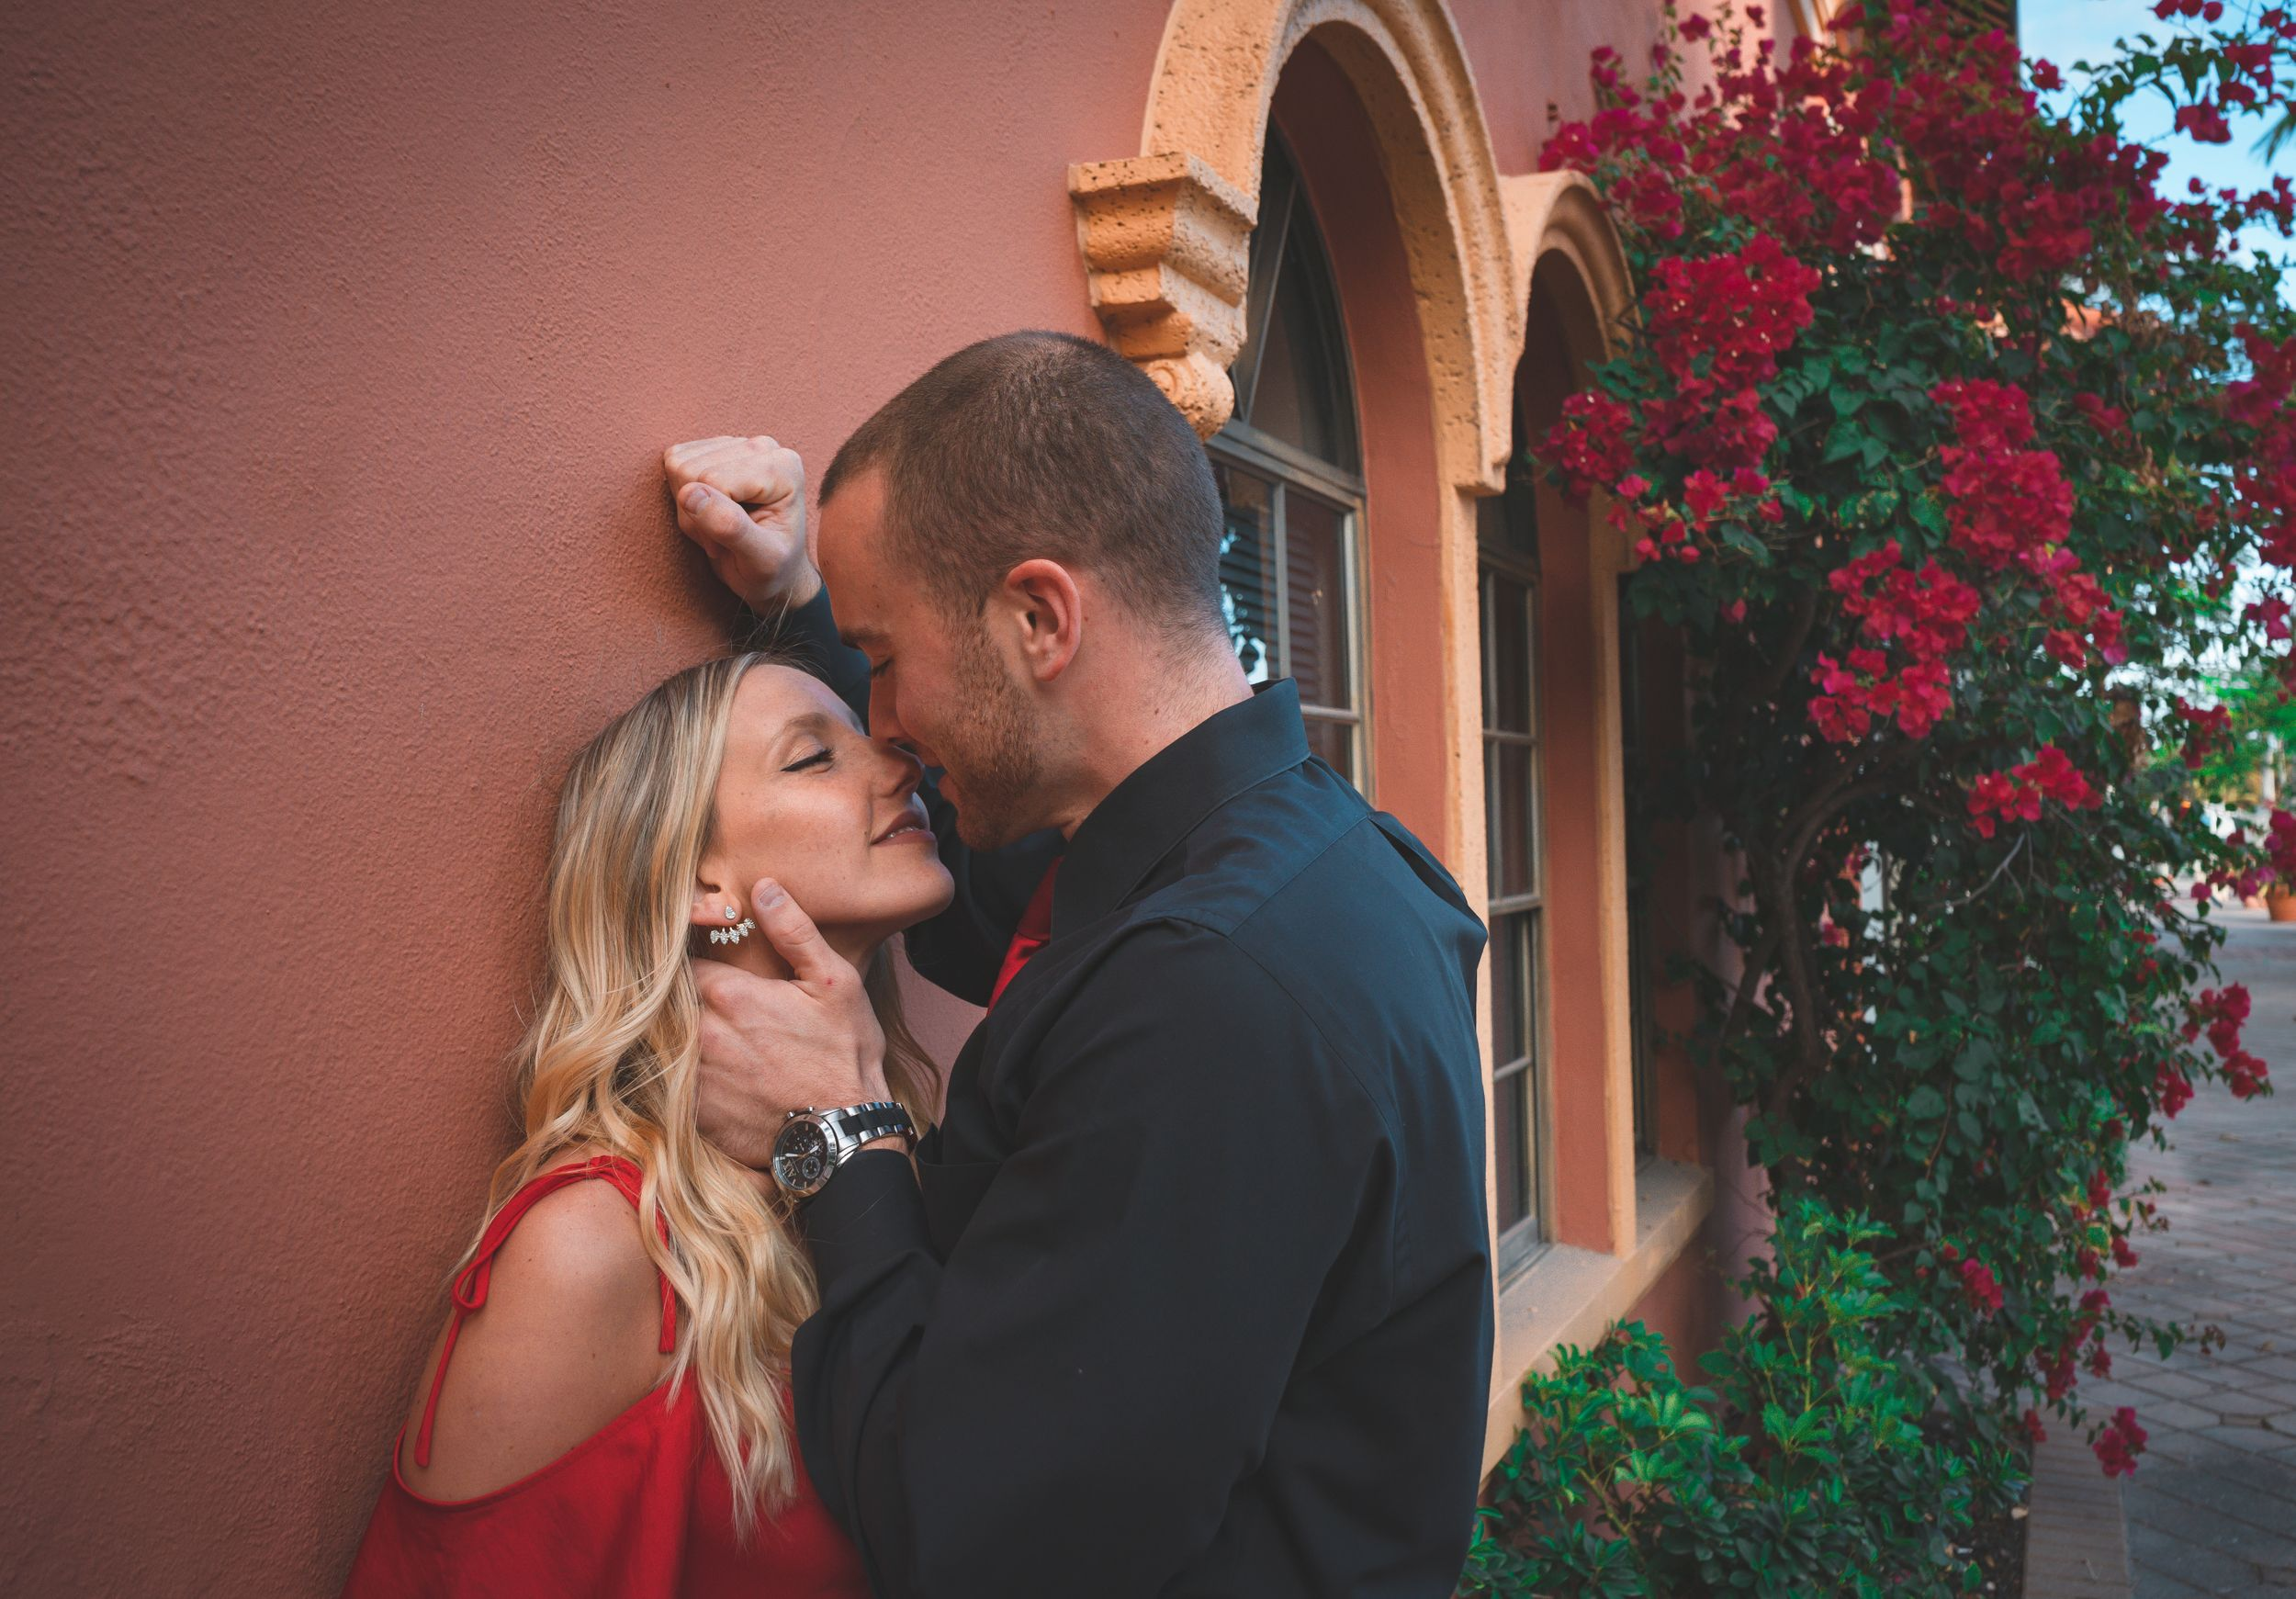 South Florida Couples Photographer, Boca Raton